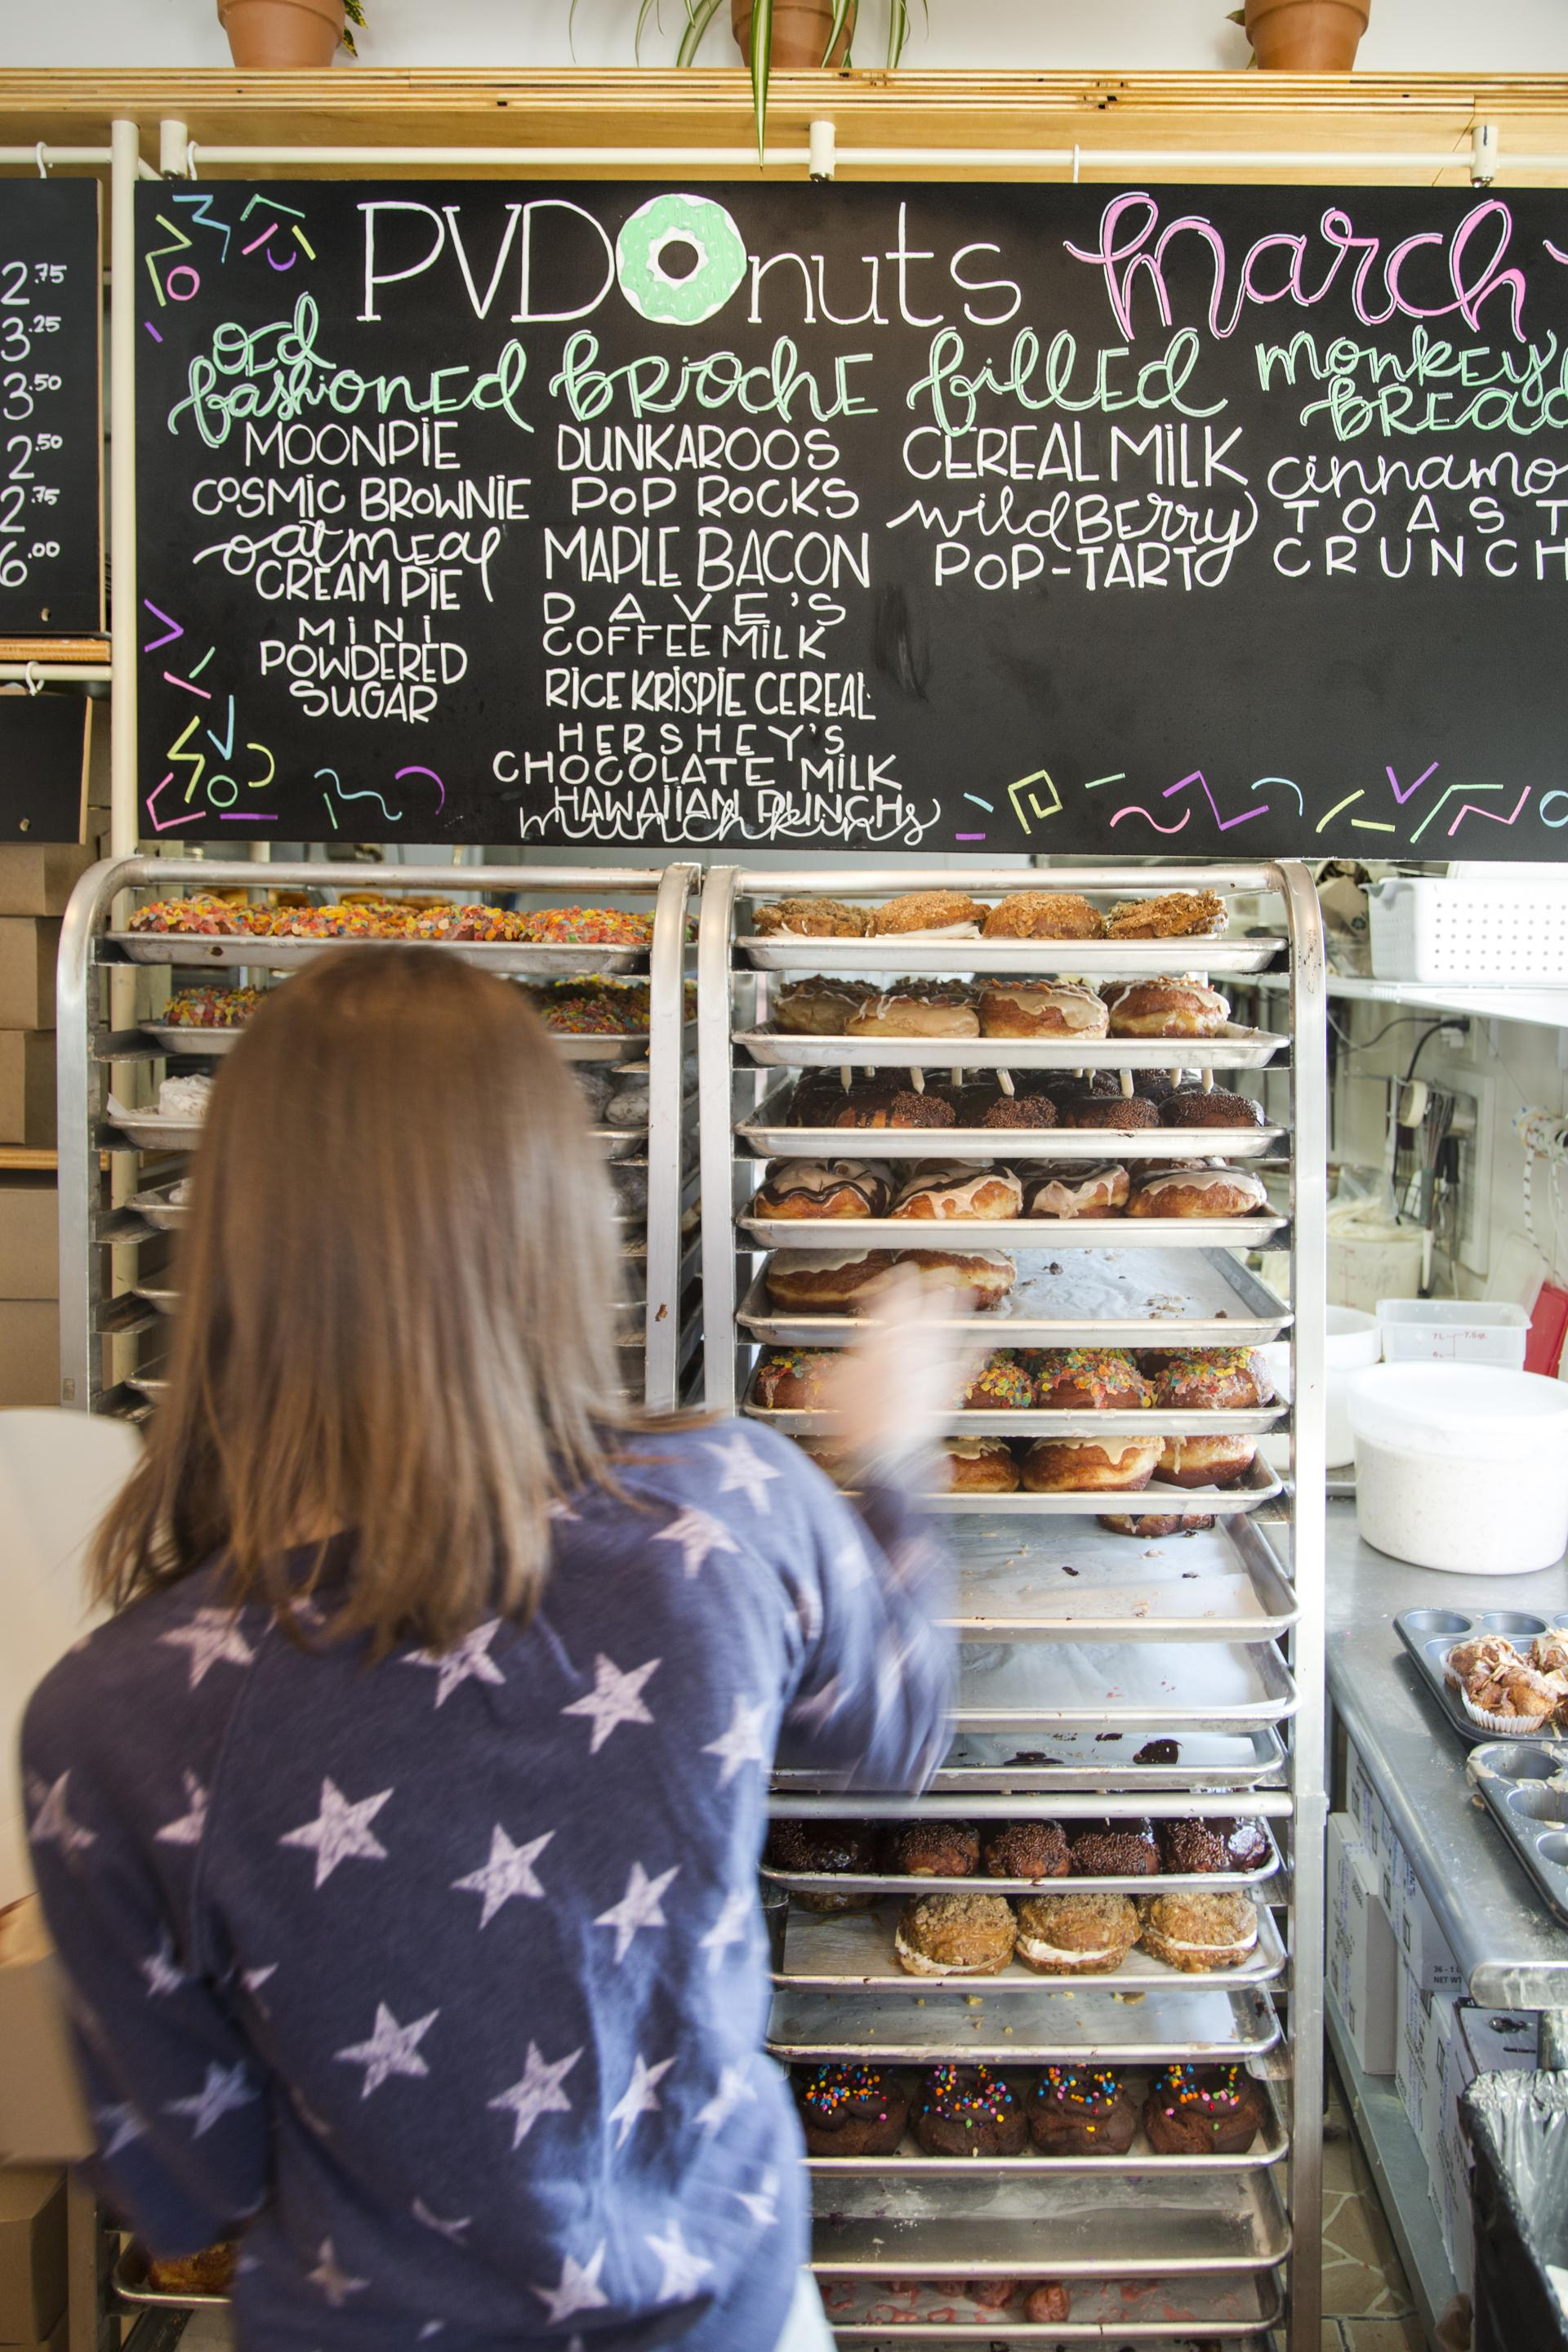 where to eat and what to order in providence - the boston globe